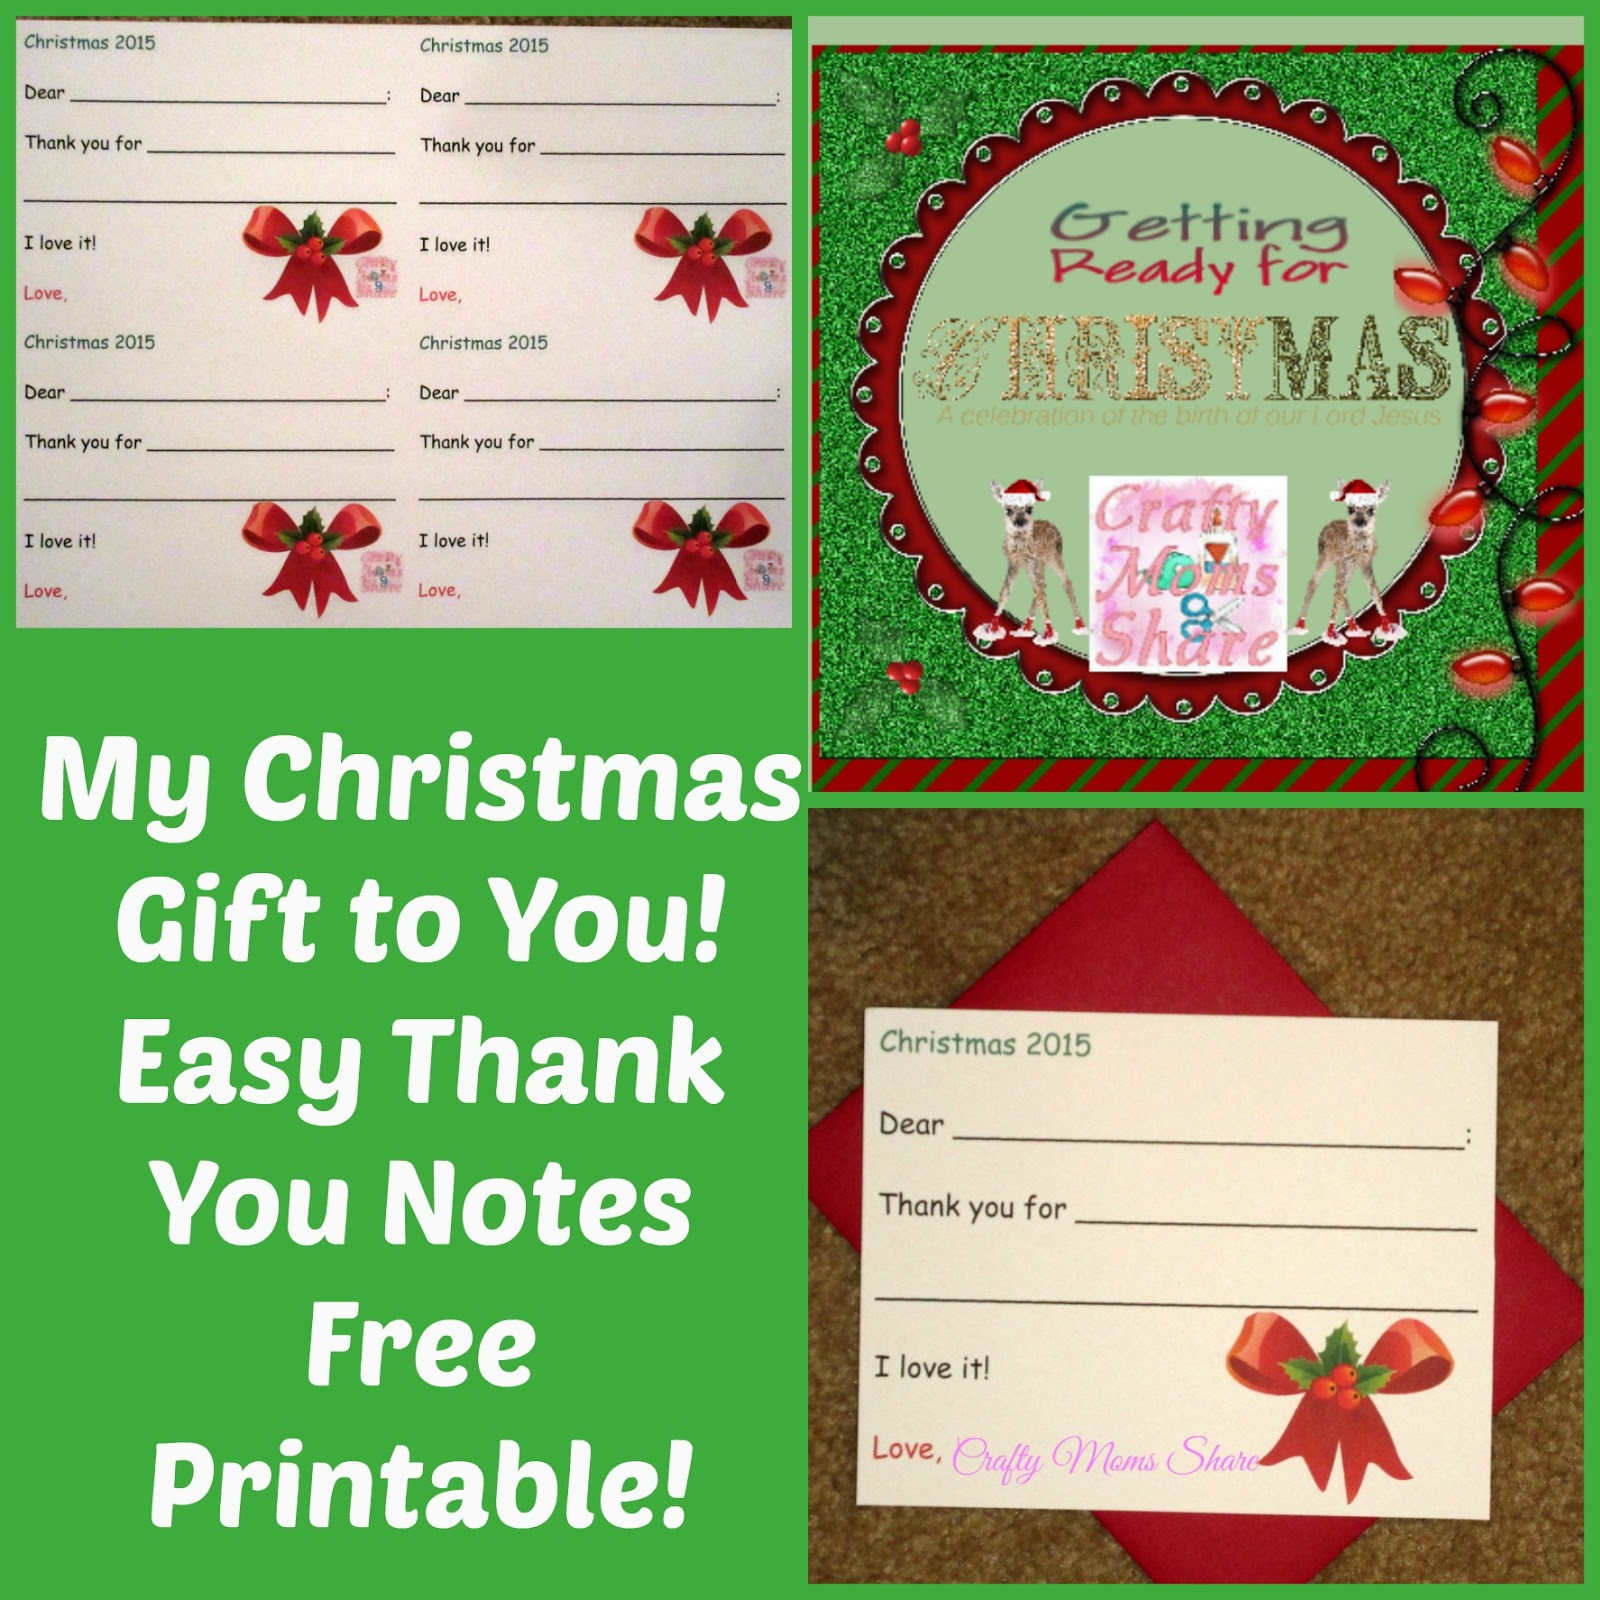 Crafty Moms Share Easy Christmas Thank You Notes Free Printable